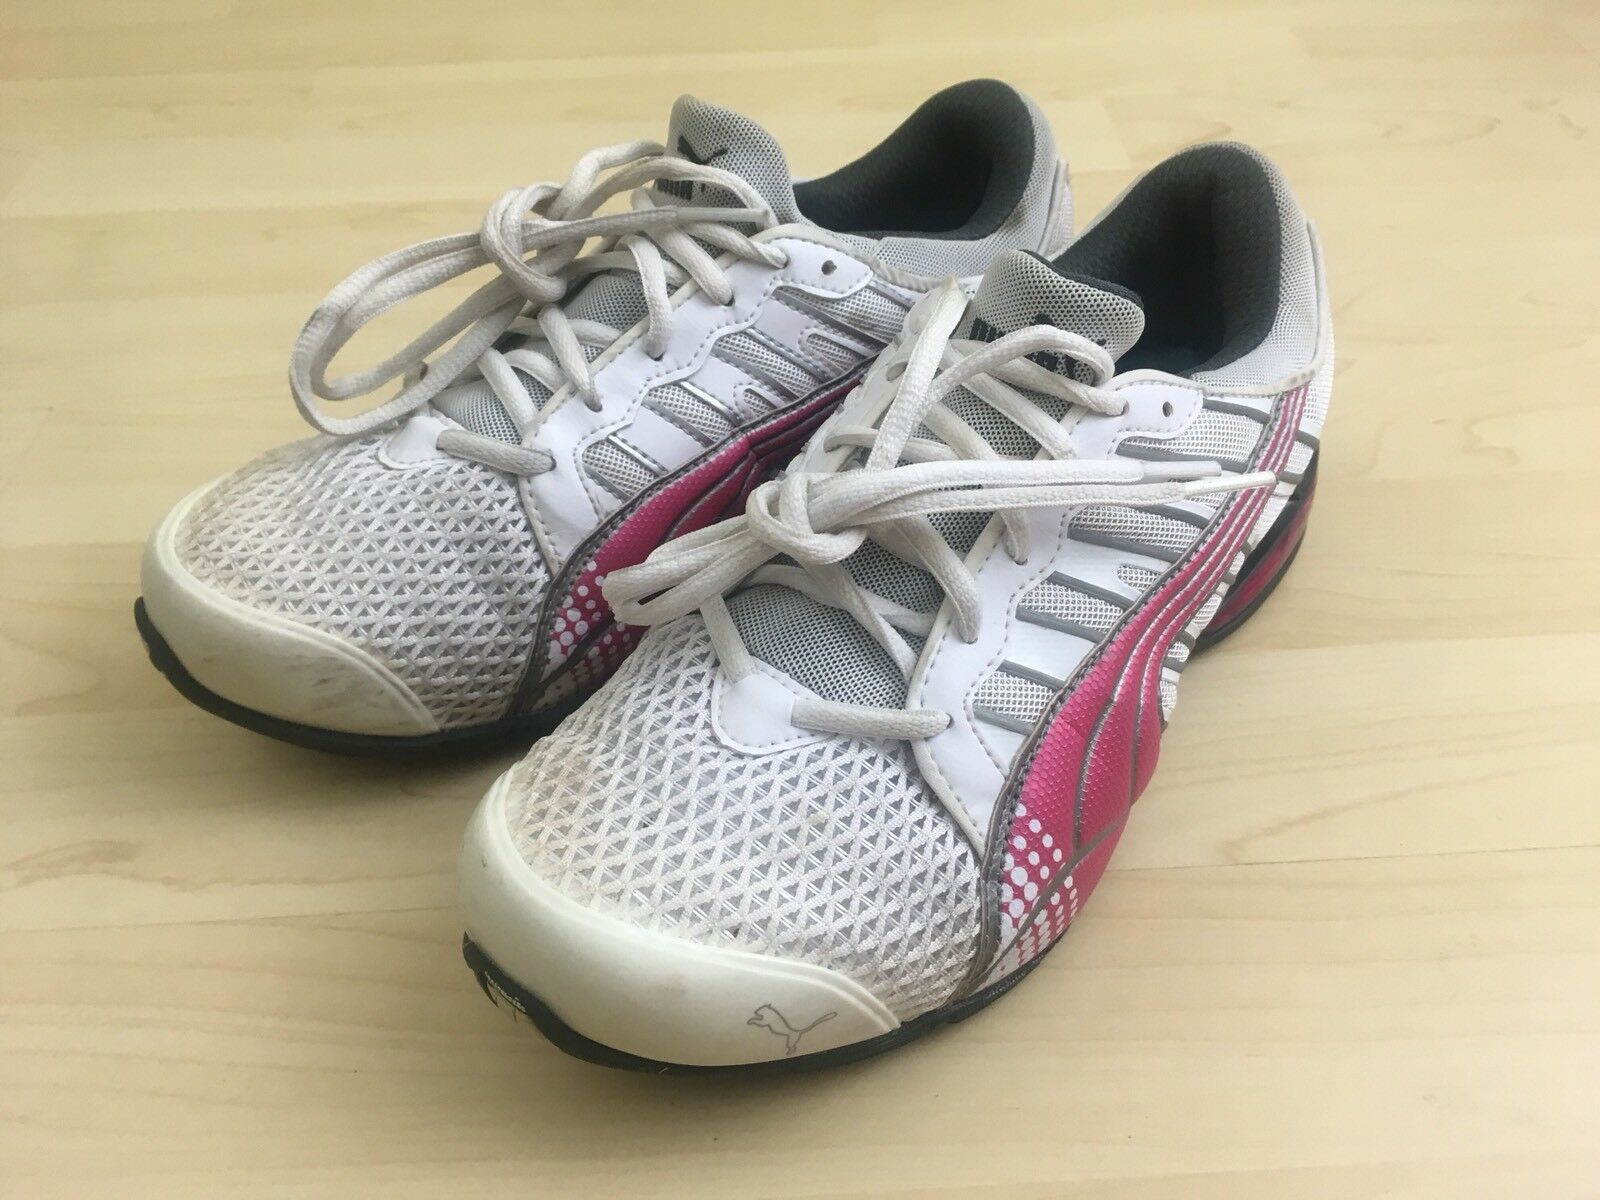 Puma Womens Pink Gray White IOCELL